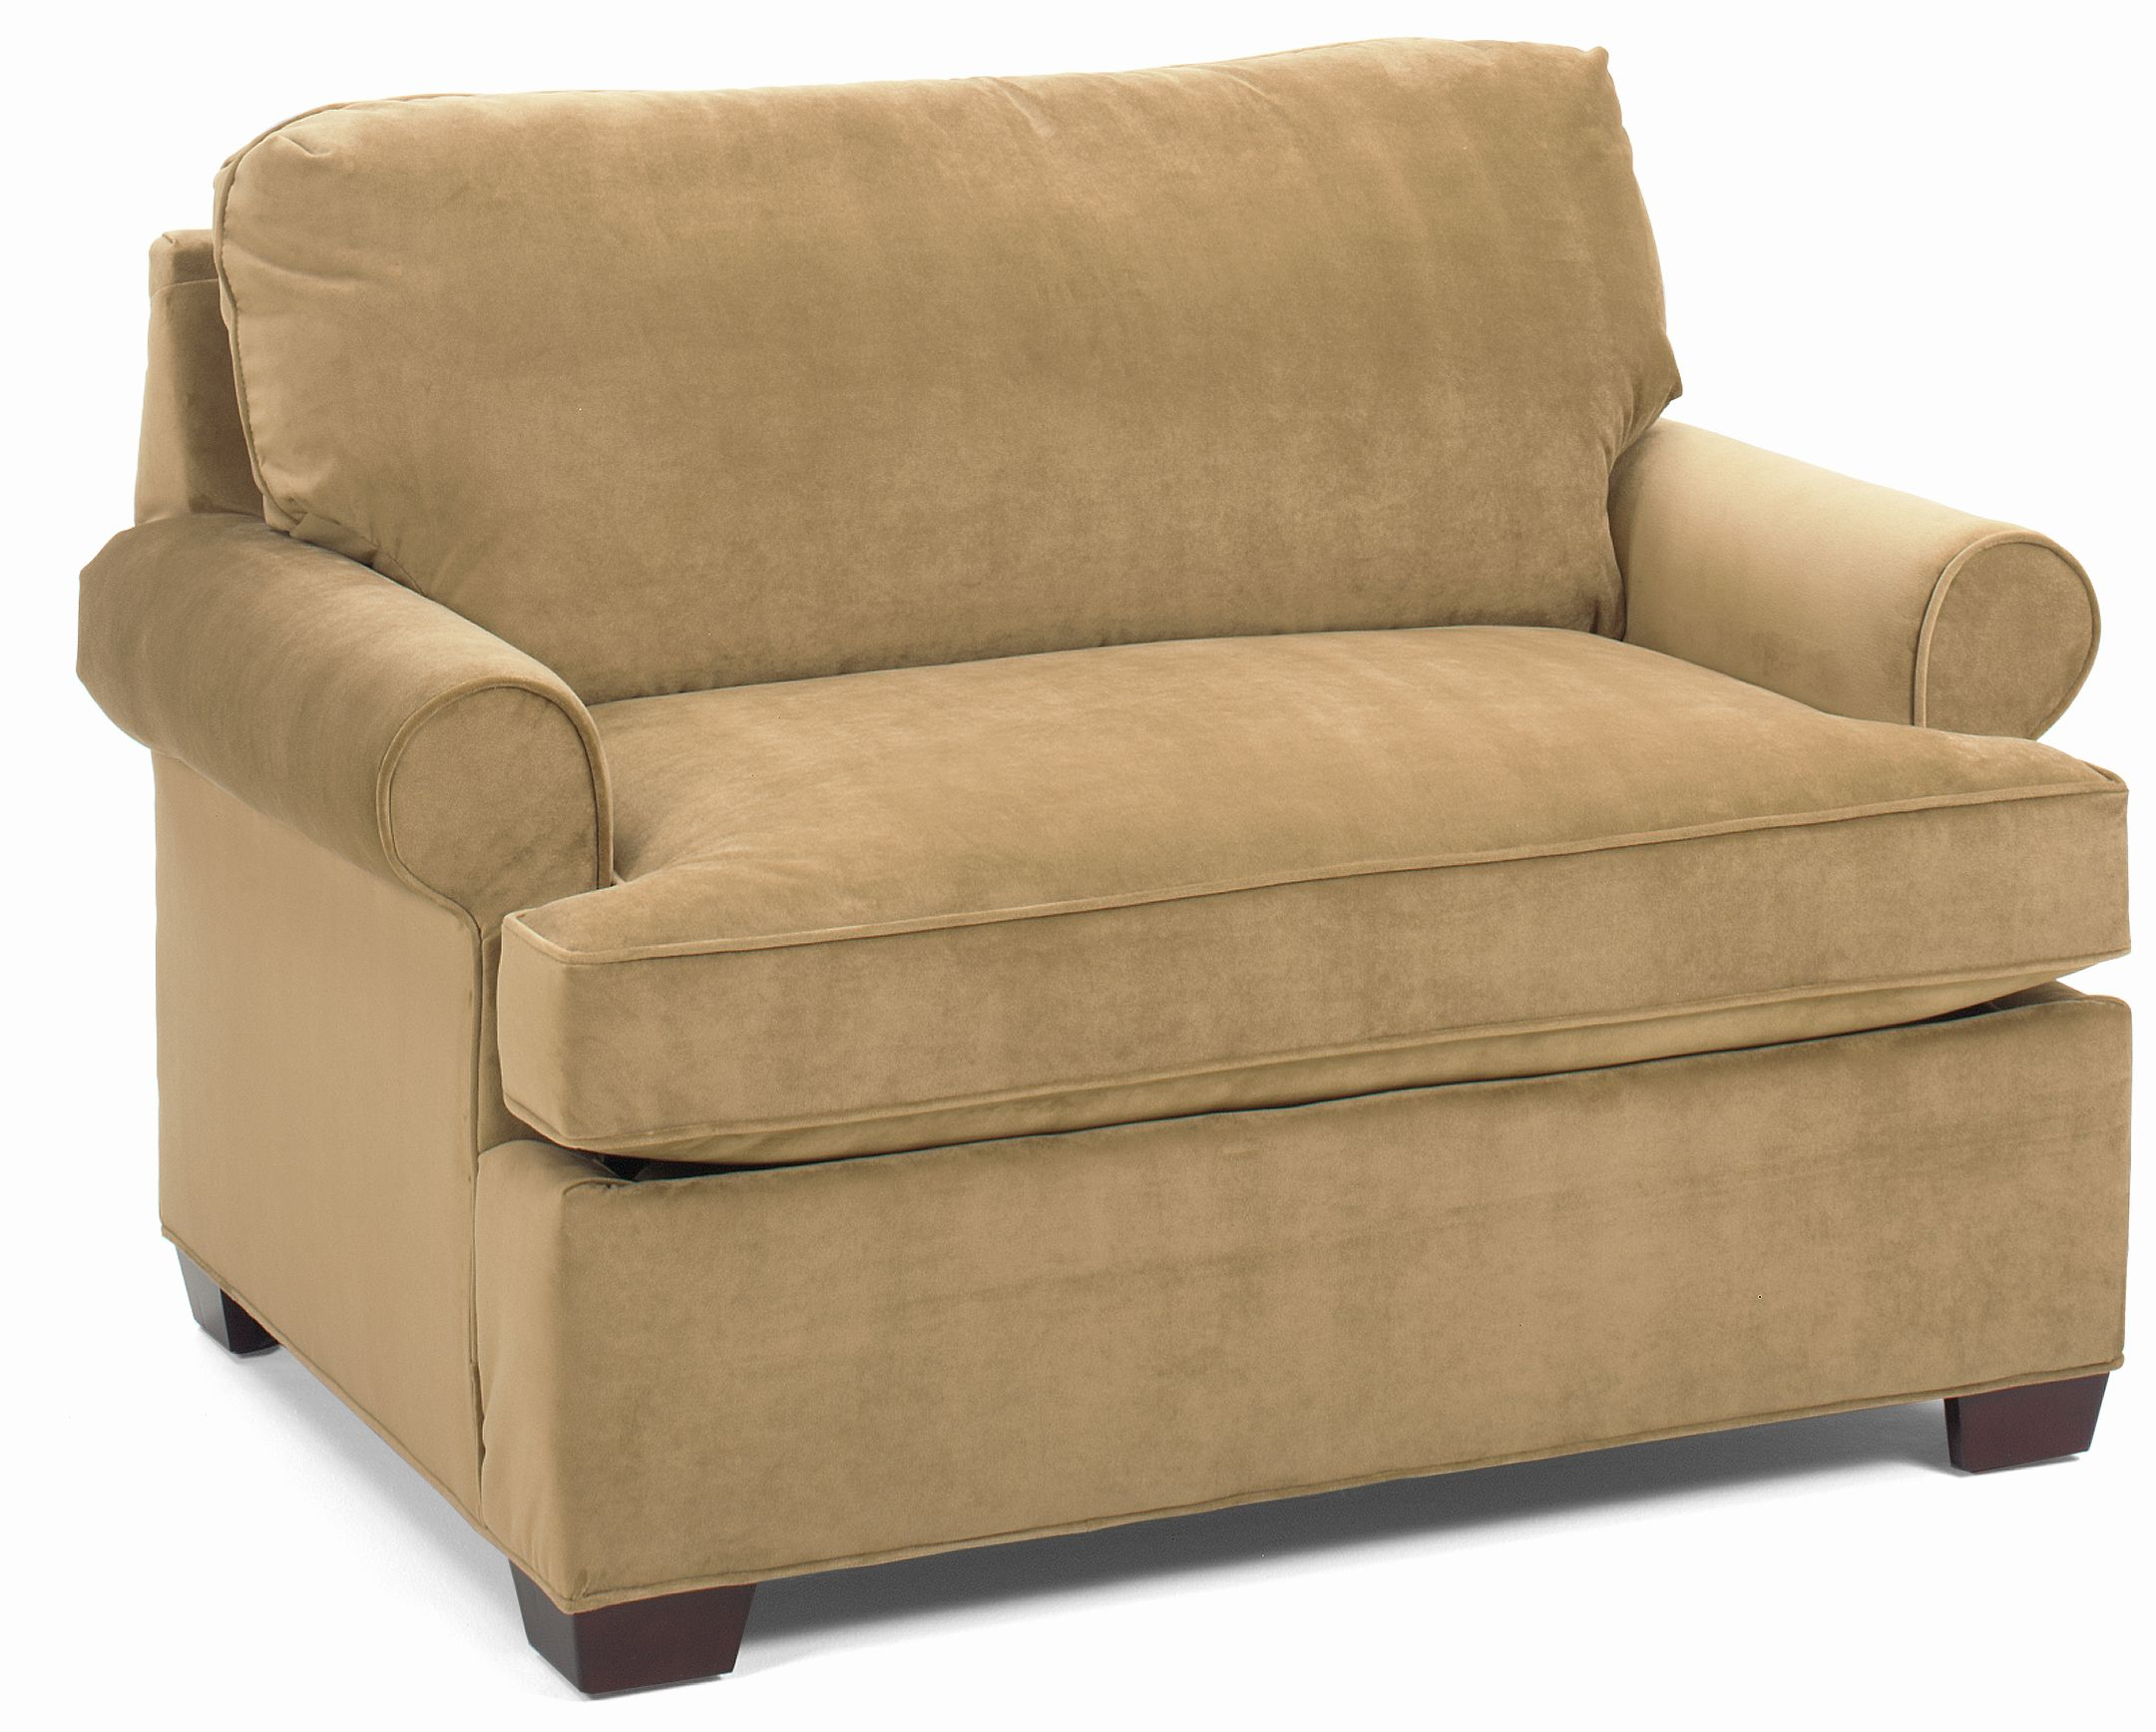 This May Not Look Styling But It Is A Sleeper Chair And